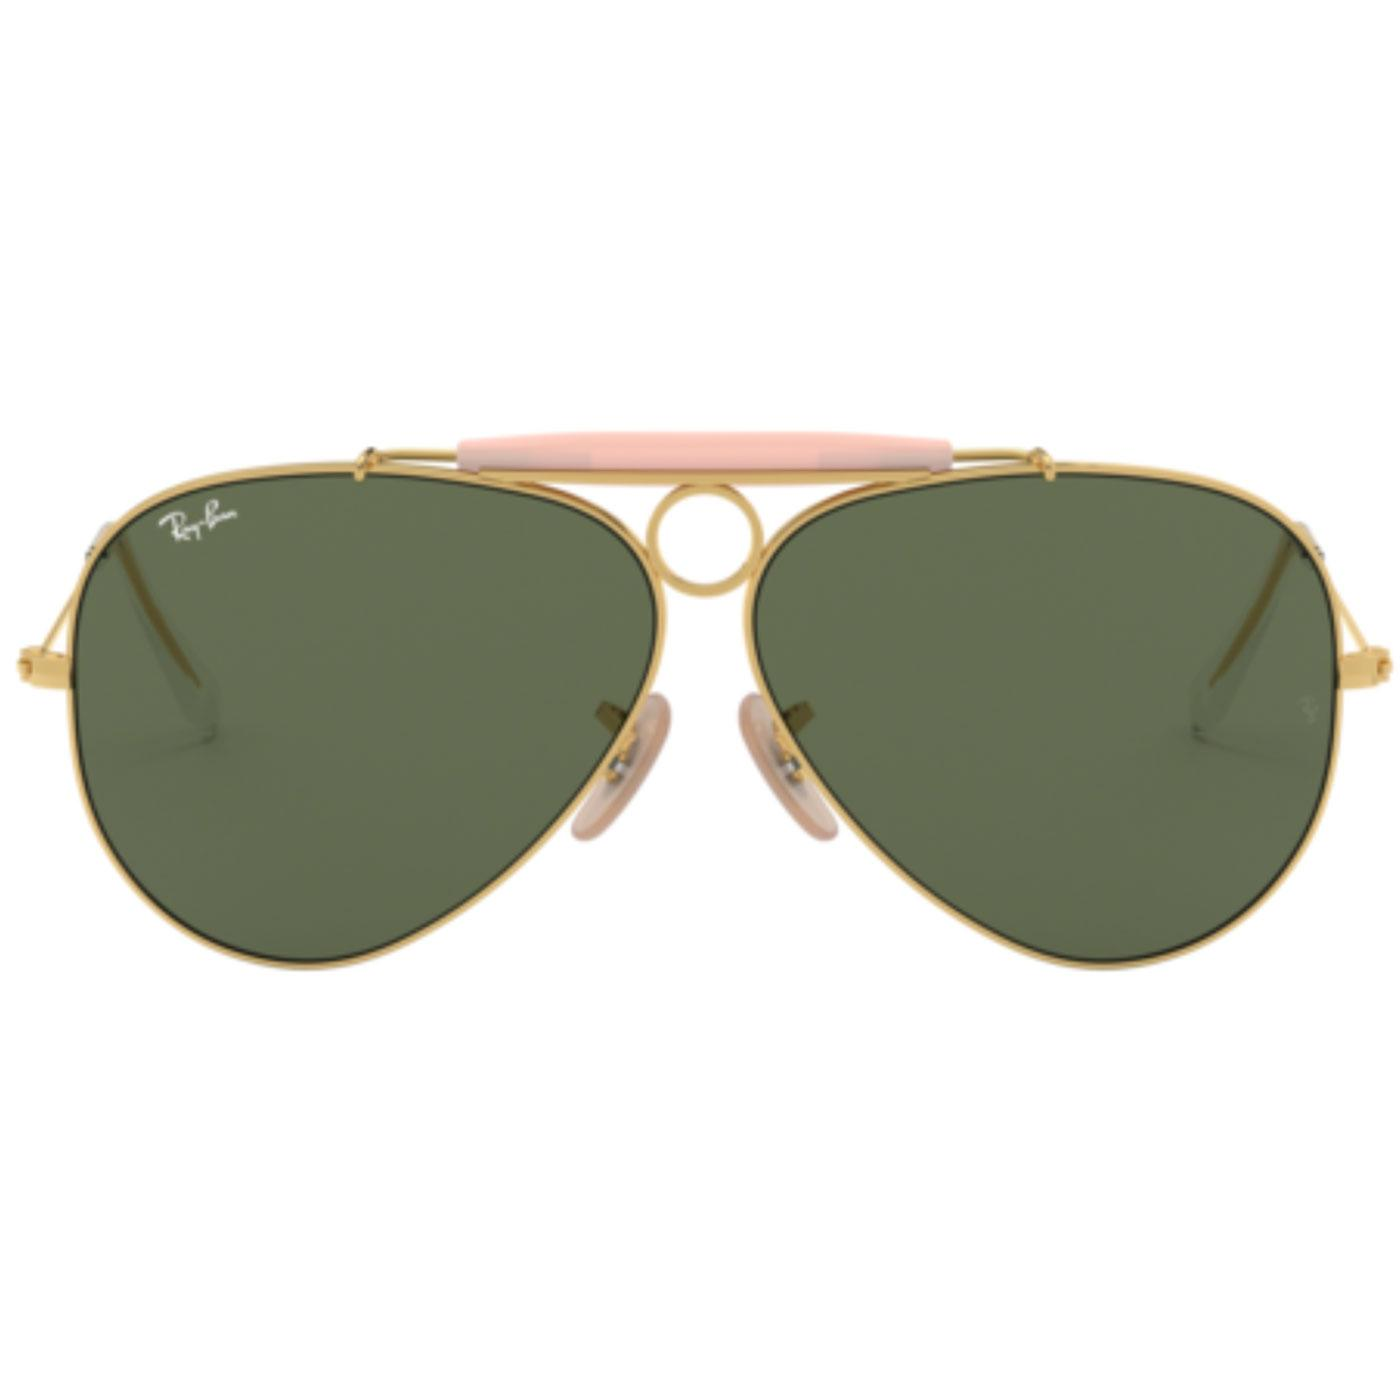 Shooter RAY-BAN Icon Retro 70s Mod Sunglasses Gold